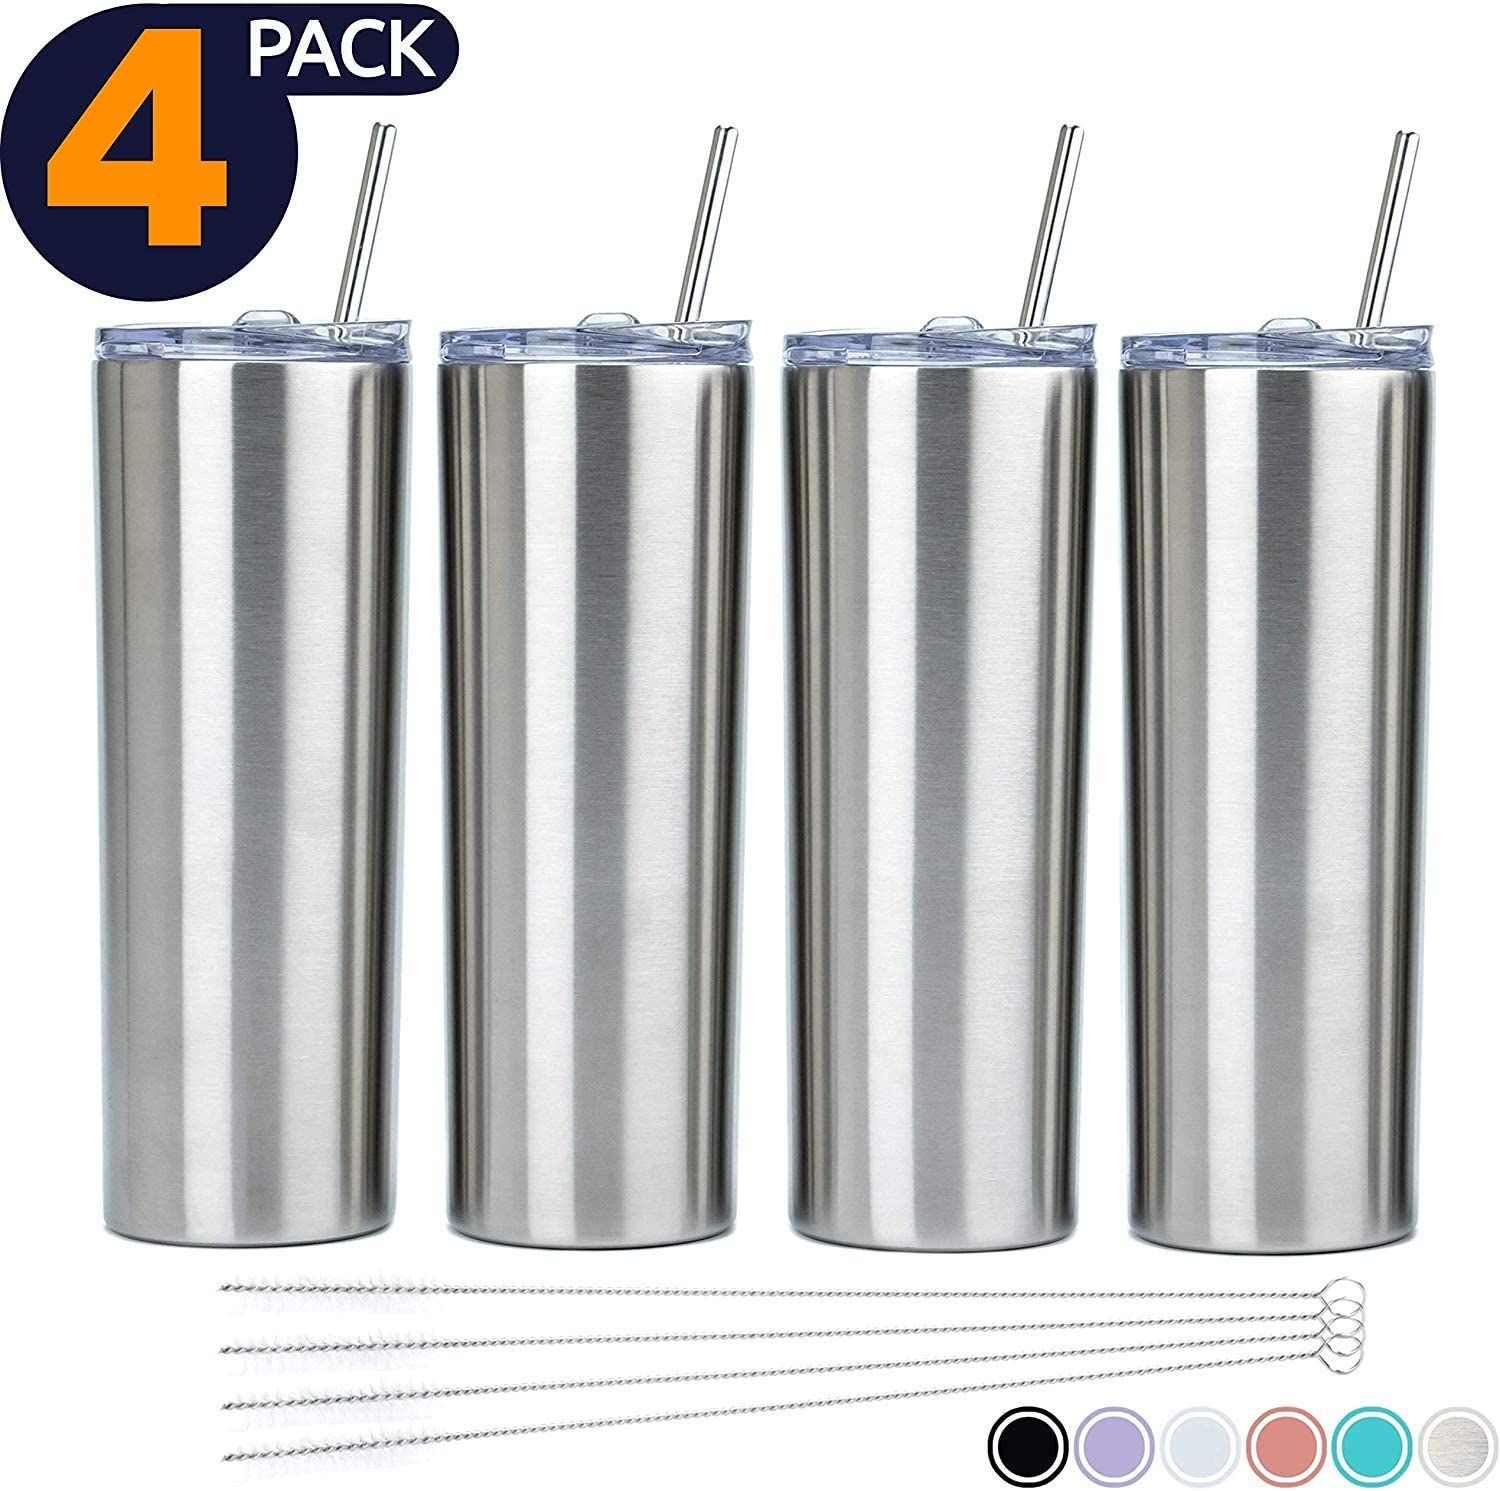 Stainless steel 20oz skinny tumbler double wall insulated with lids and straws